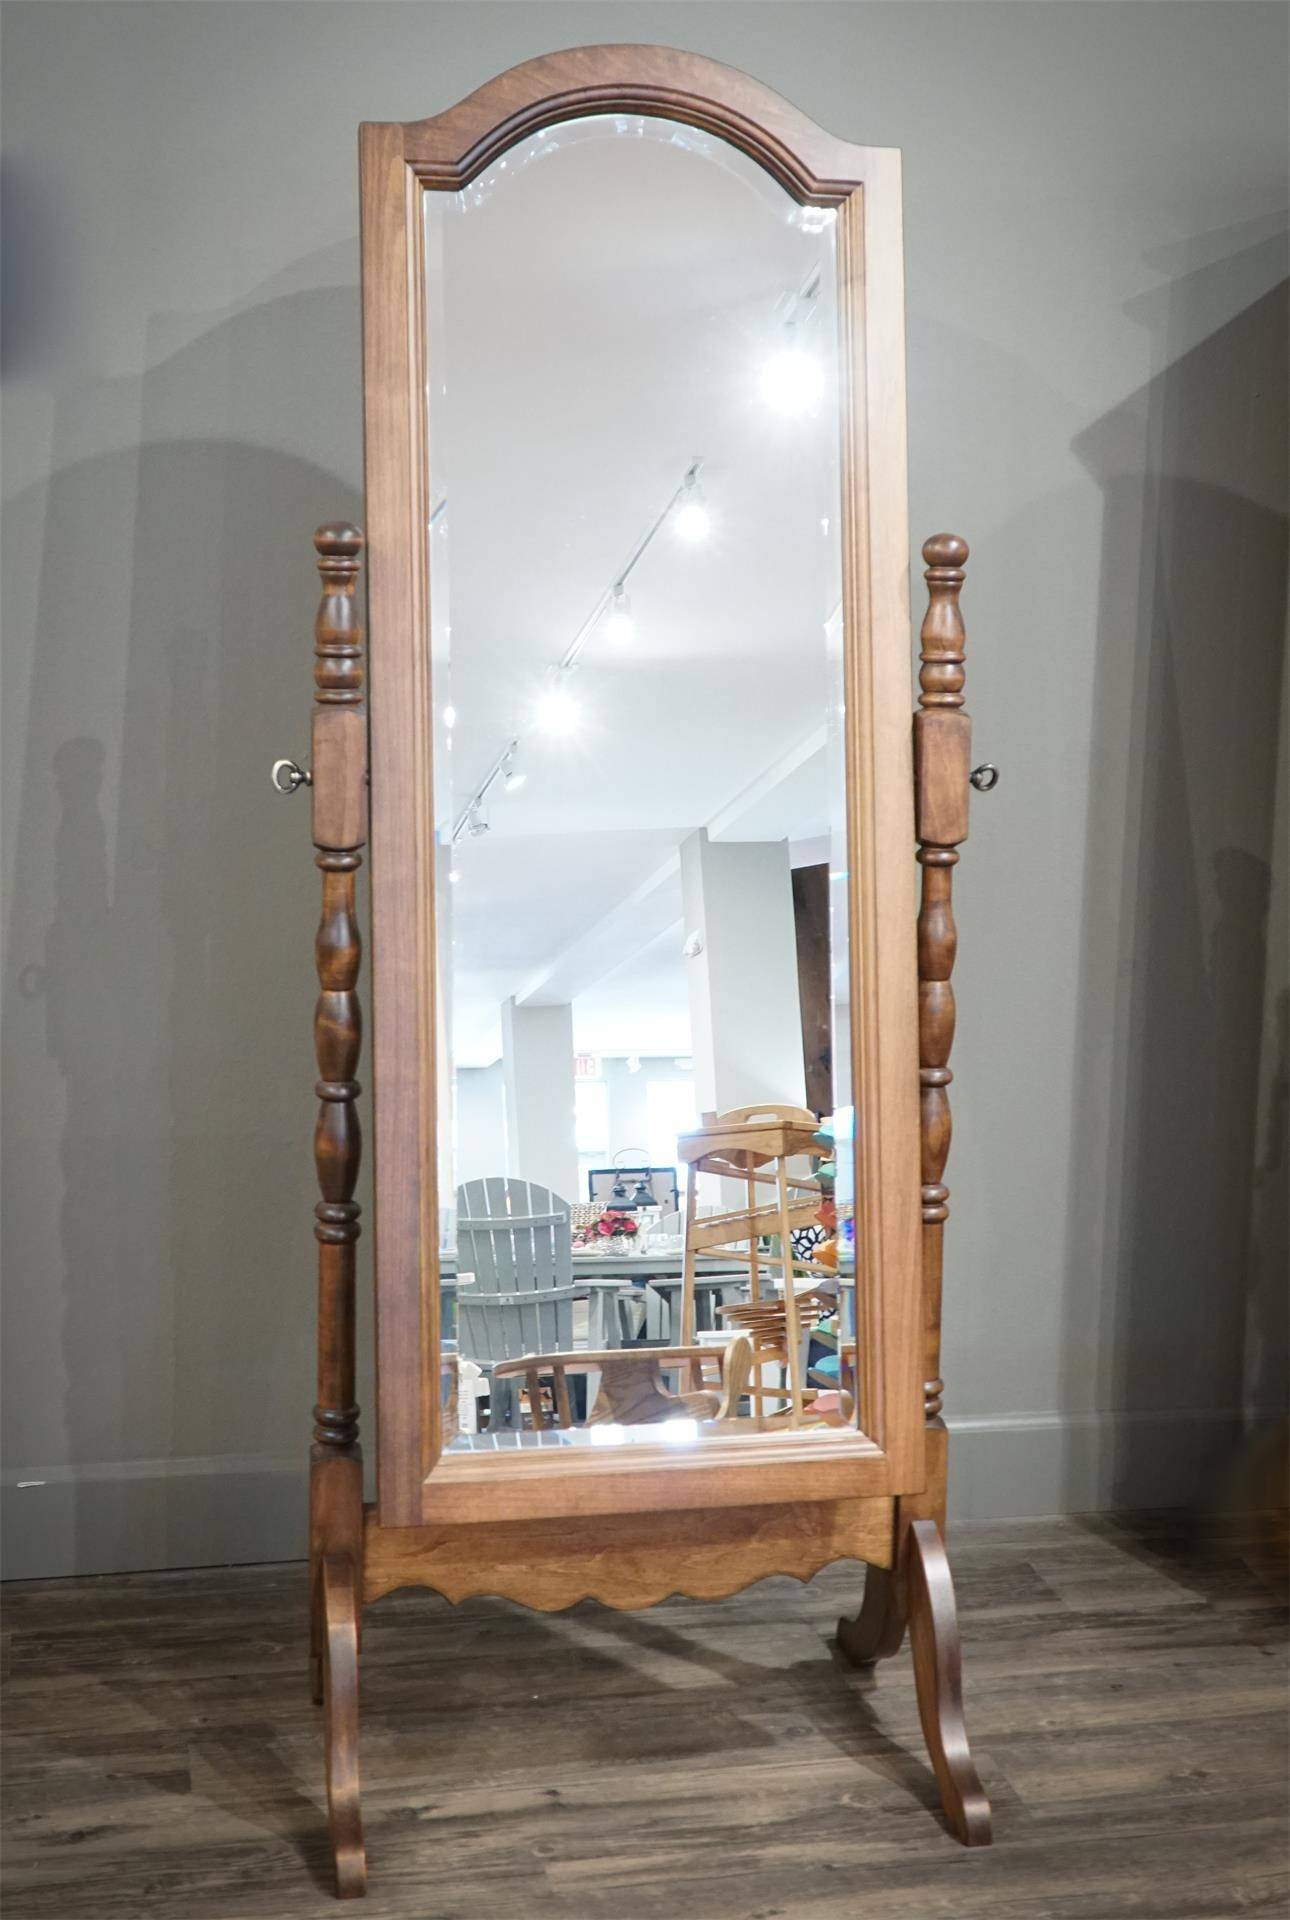 Amish Full Length Victorian Style Floor Mirror inside Victorian Full Length Mirrors (Image 2 of 25)